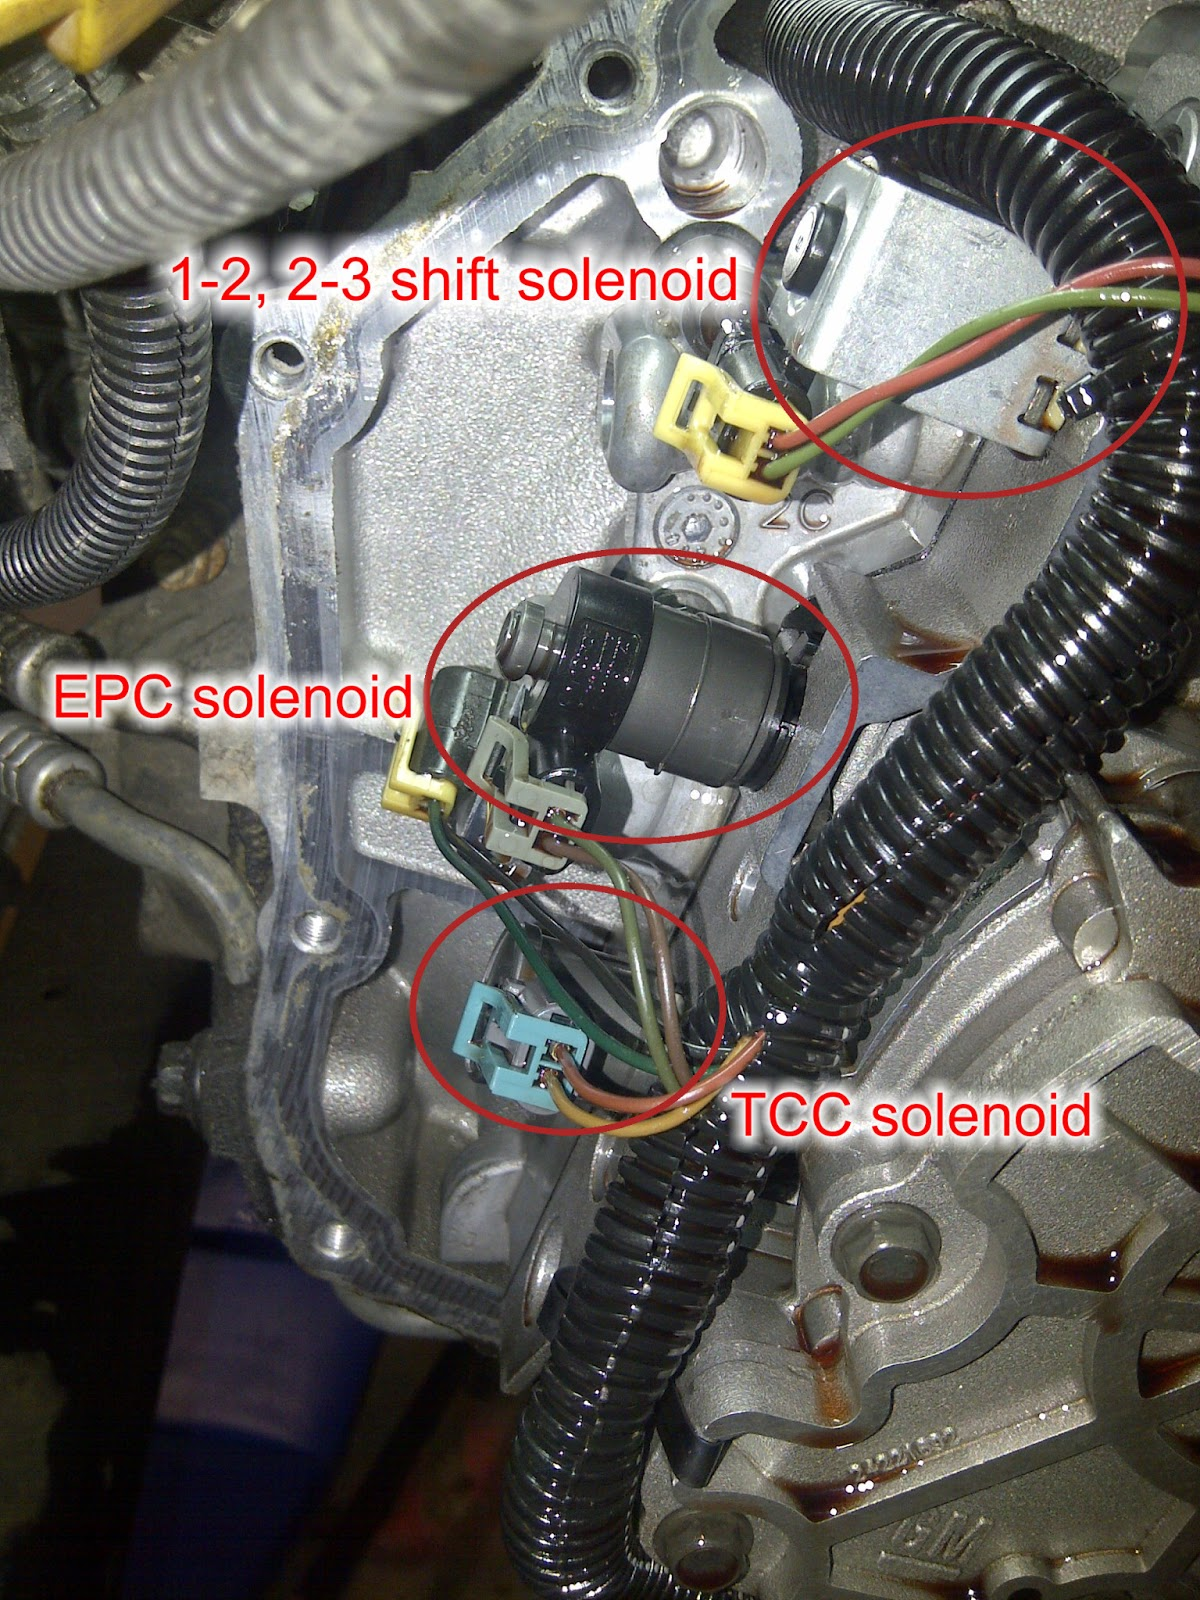 medium resolution of wiring diagram for 4l60e transmission roc grp org at 3 of the 4 solenoids i replaced